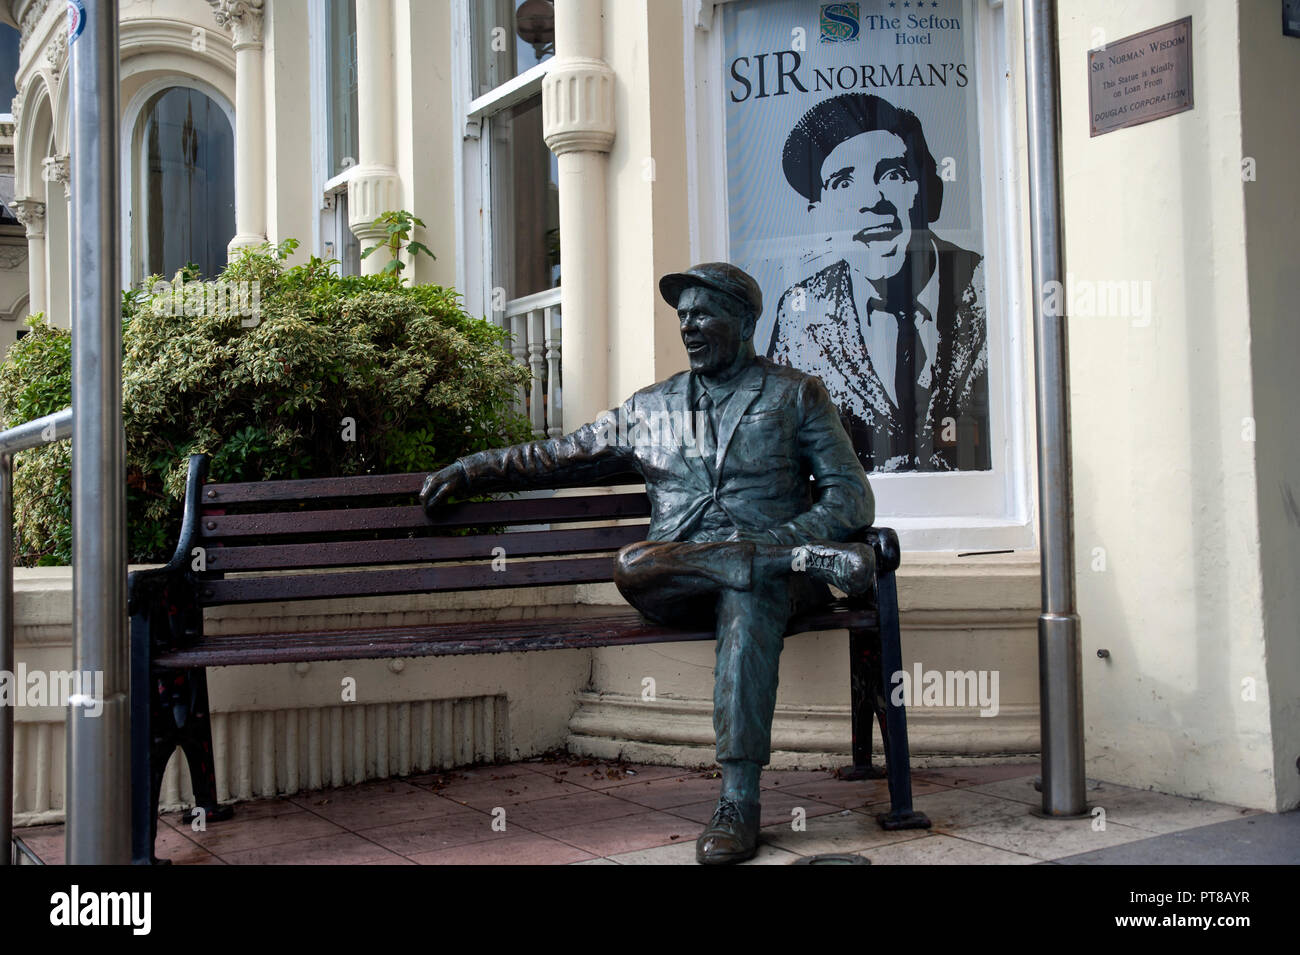 Statue of Sir Norman Wisdom sitting on a bench outside The Sefton Hotel, Douglas, Isle of Man - Stock Image